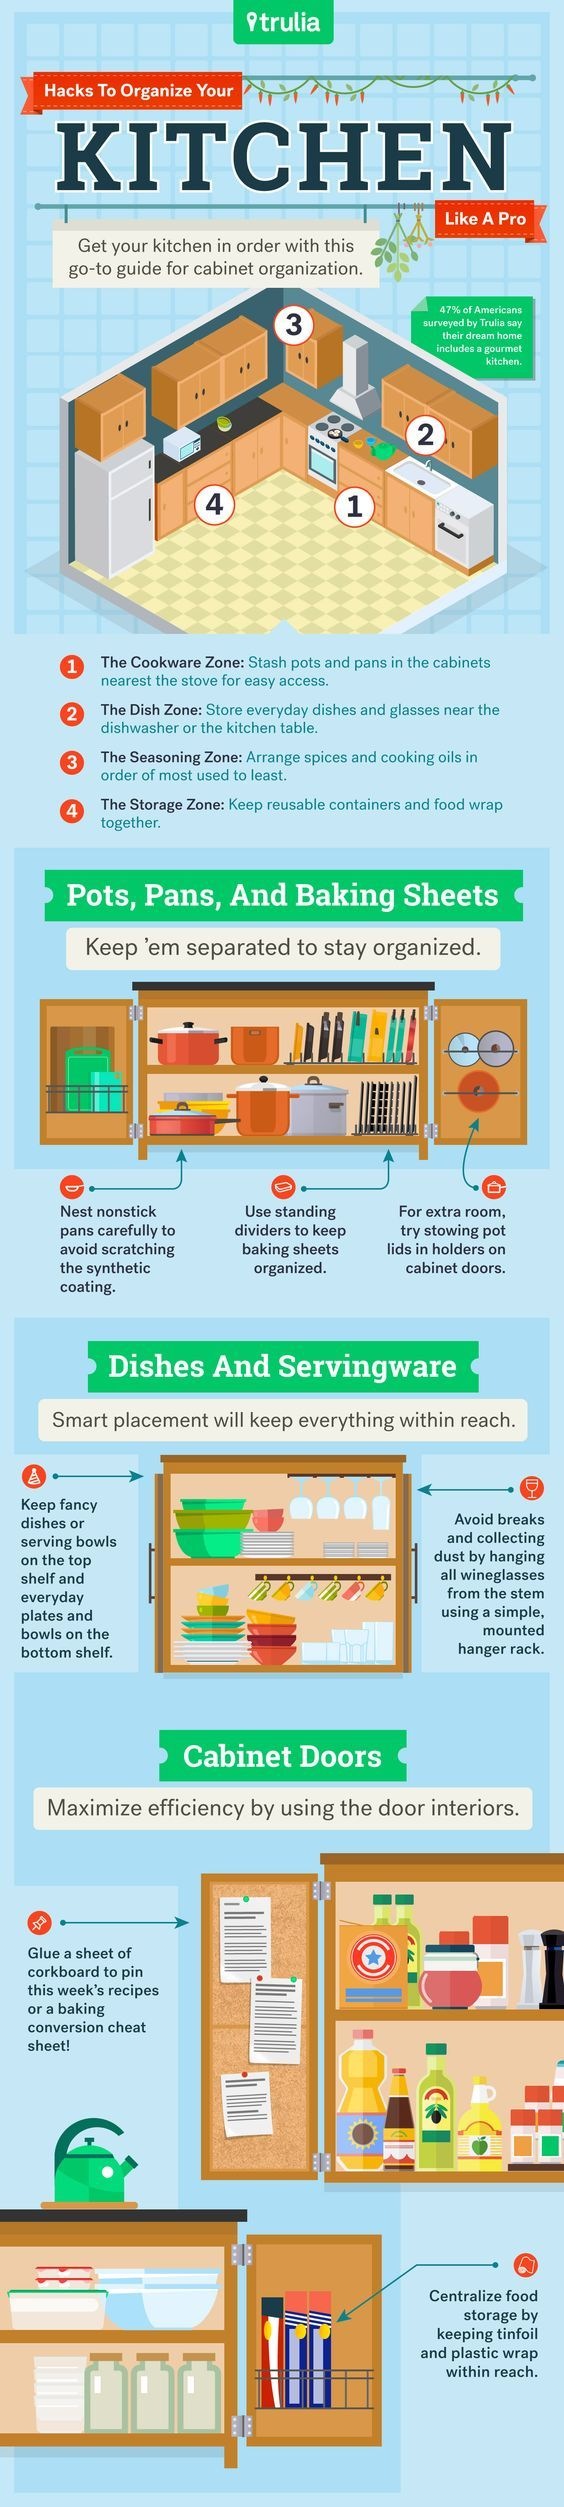 12 Clever & Unique Ways To Organise Your Kitchen. Hacks To Organize Your Kitchen.